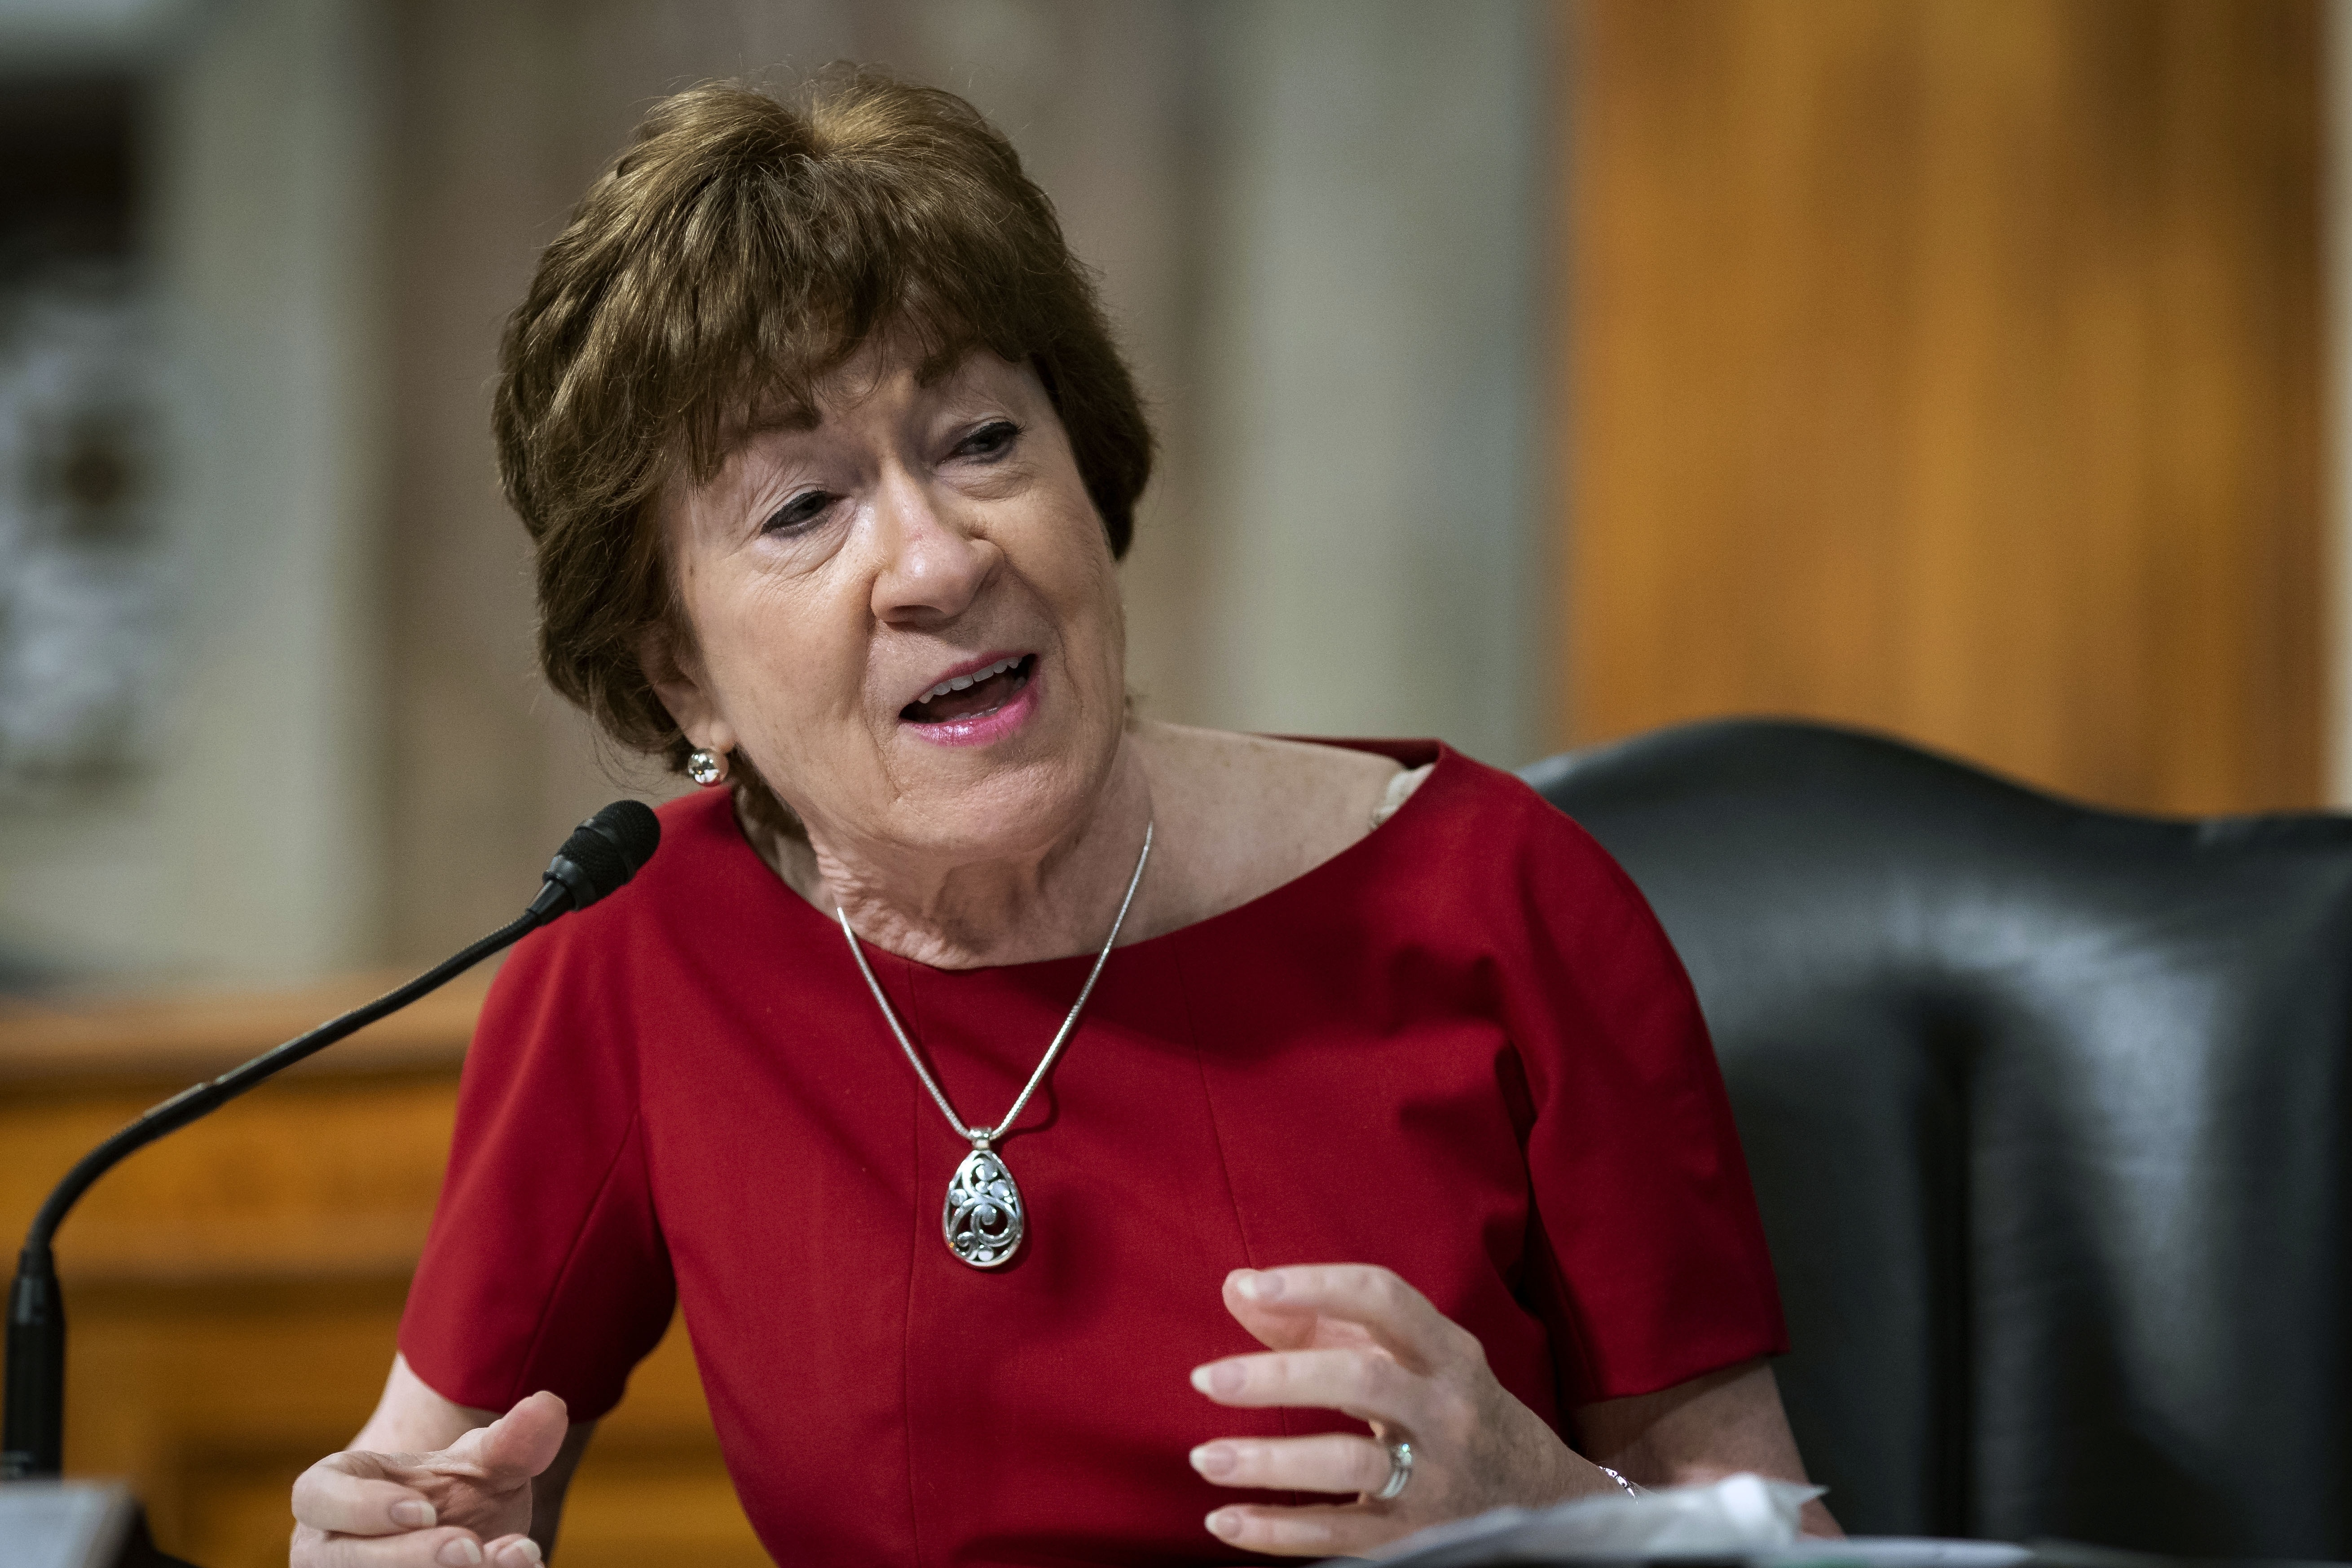 bostonglobe.com - Editorial Board - Susan Collins is no longer a good fit for Maine